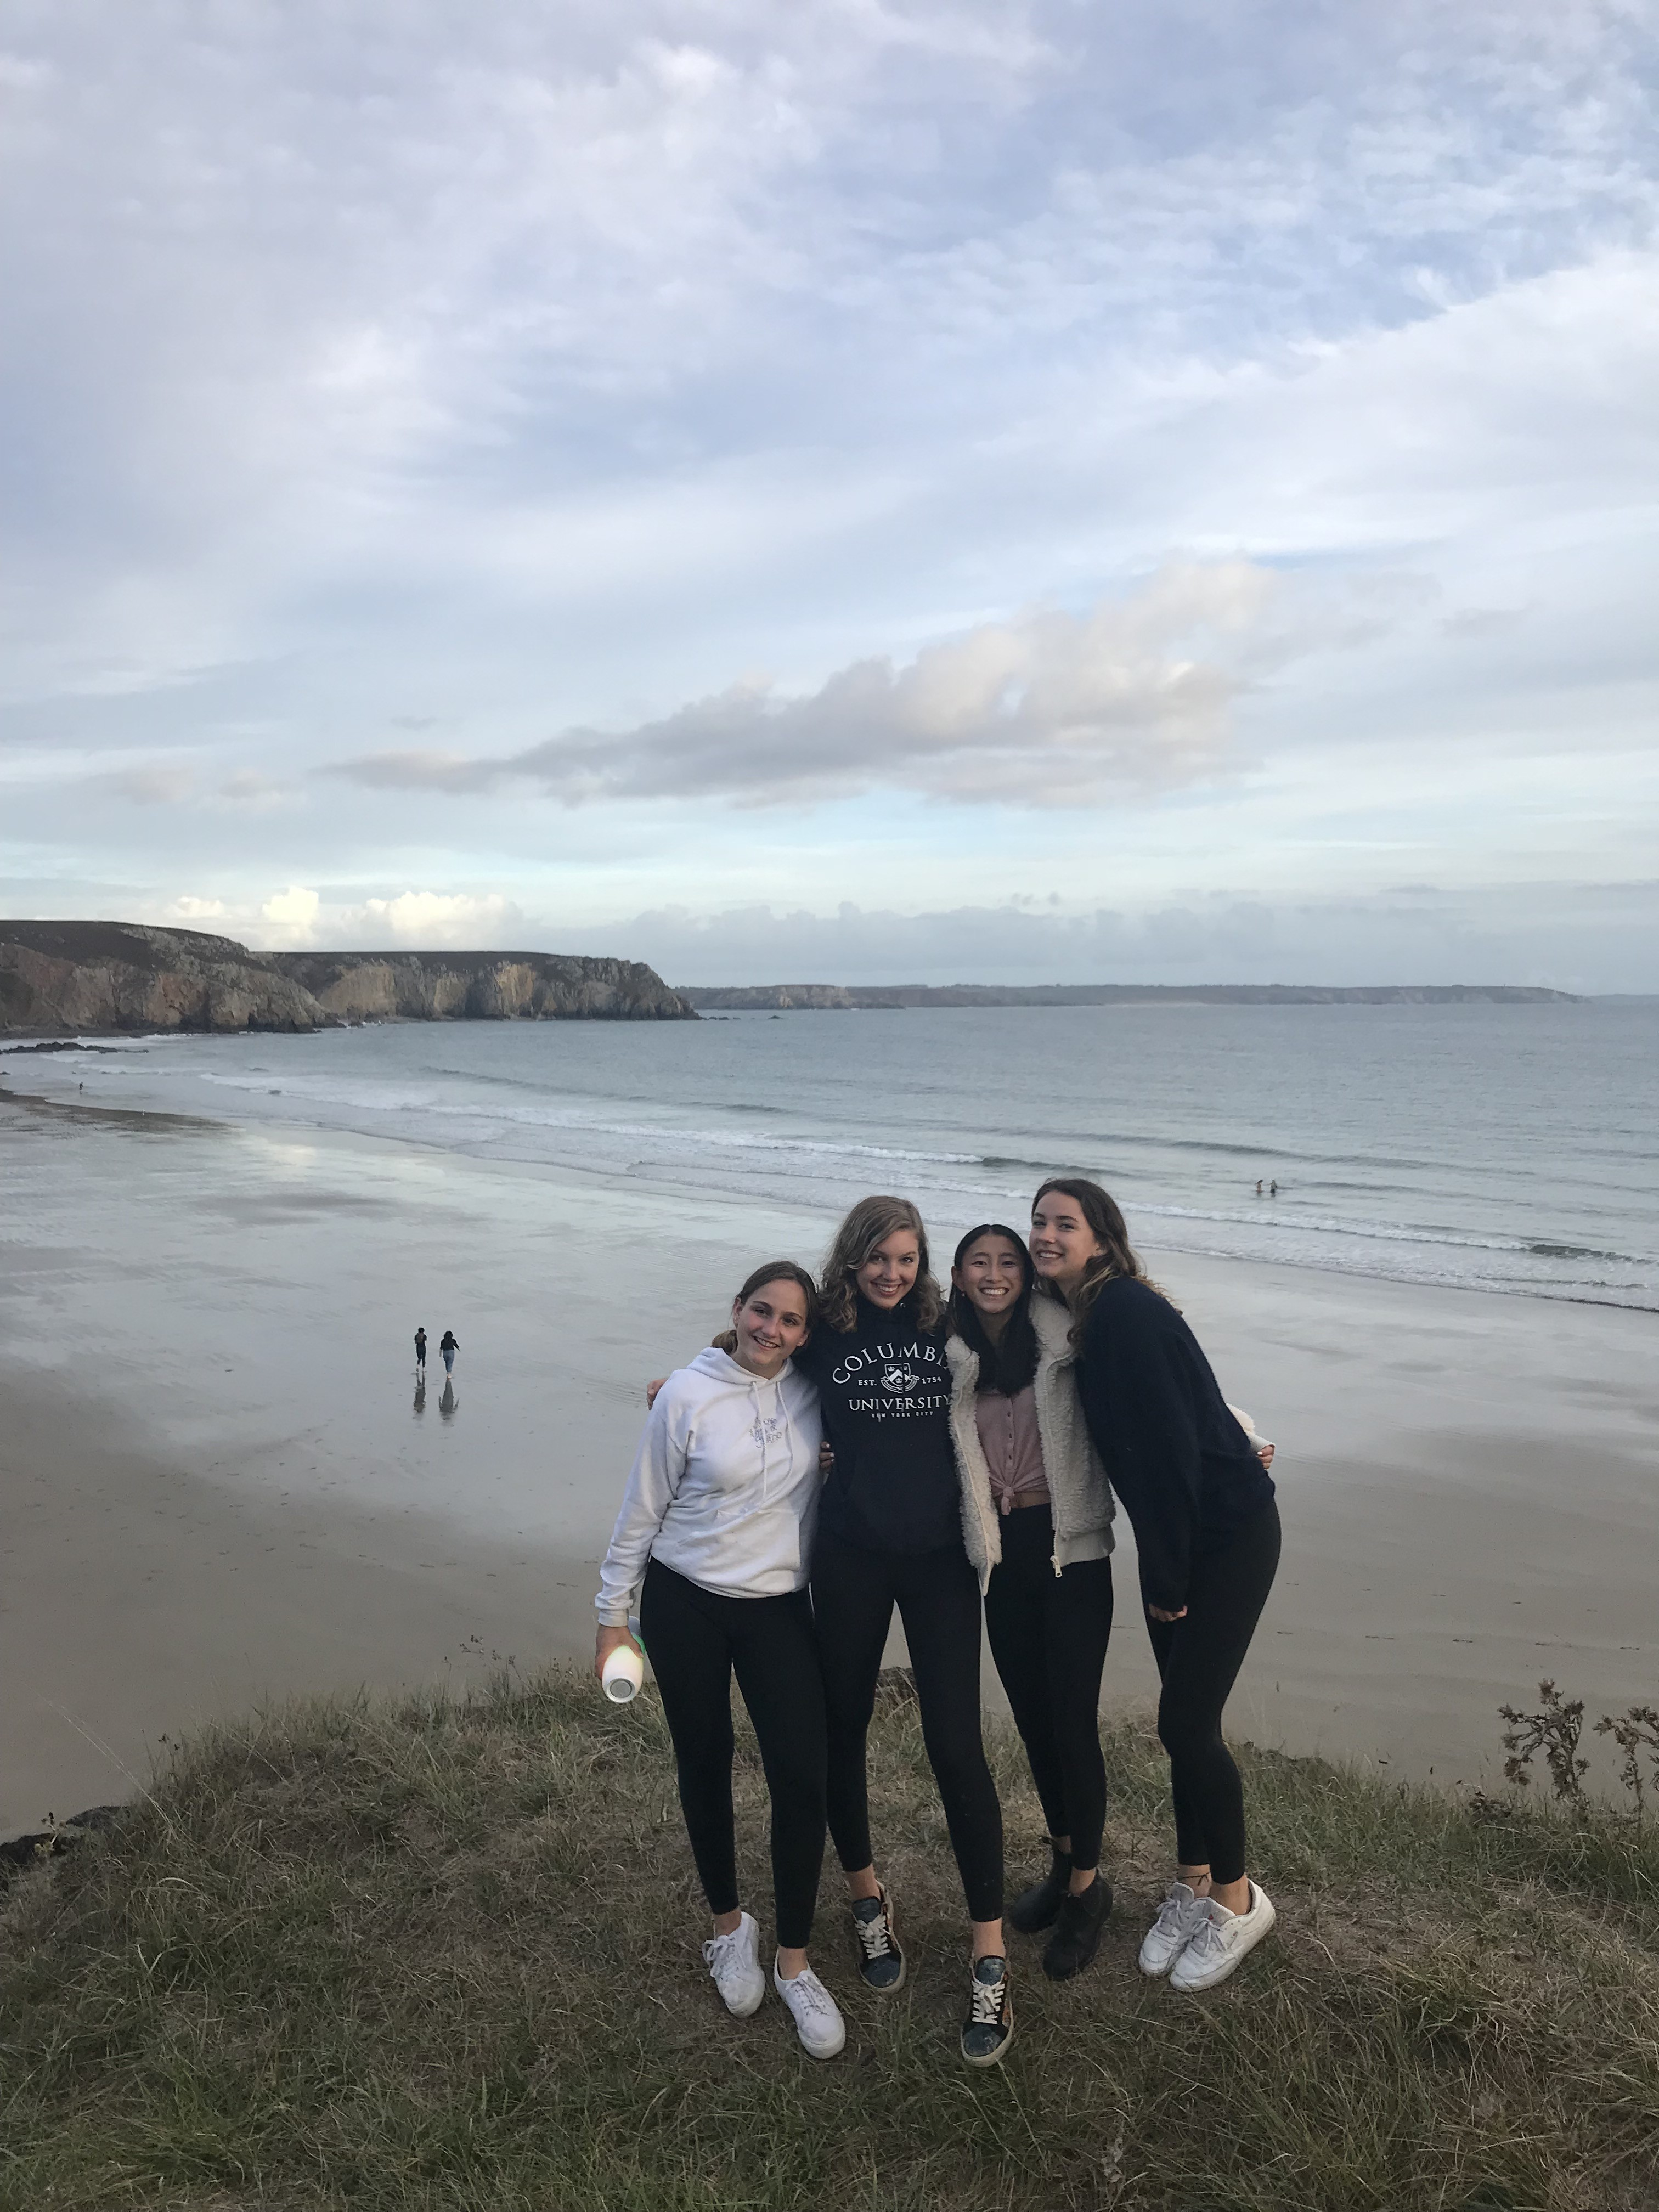 Maya with other School Year Abroad students at Cameret-Sur-Mer.